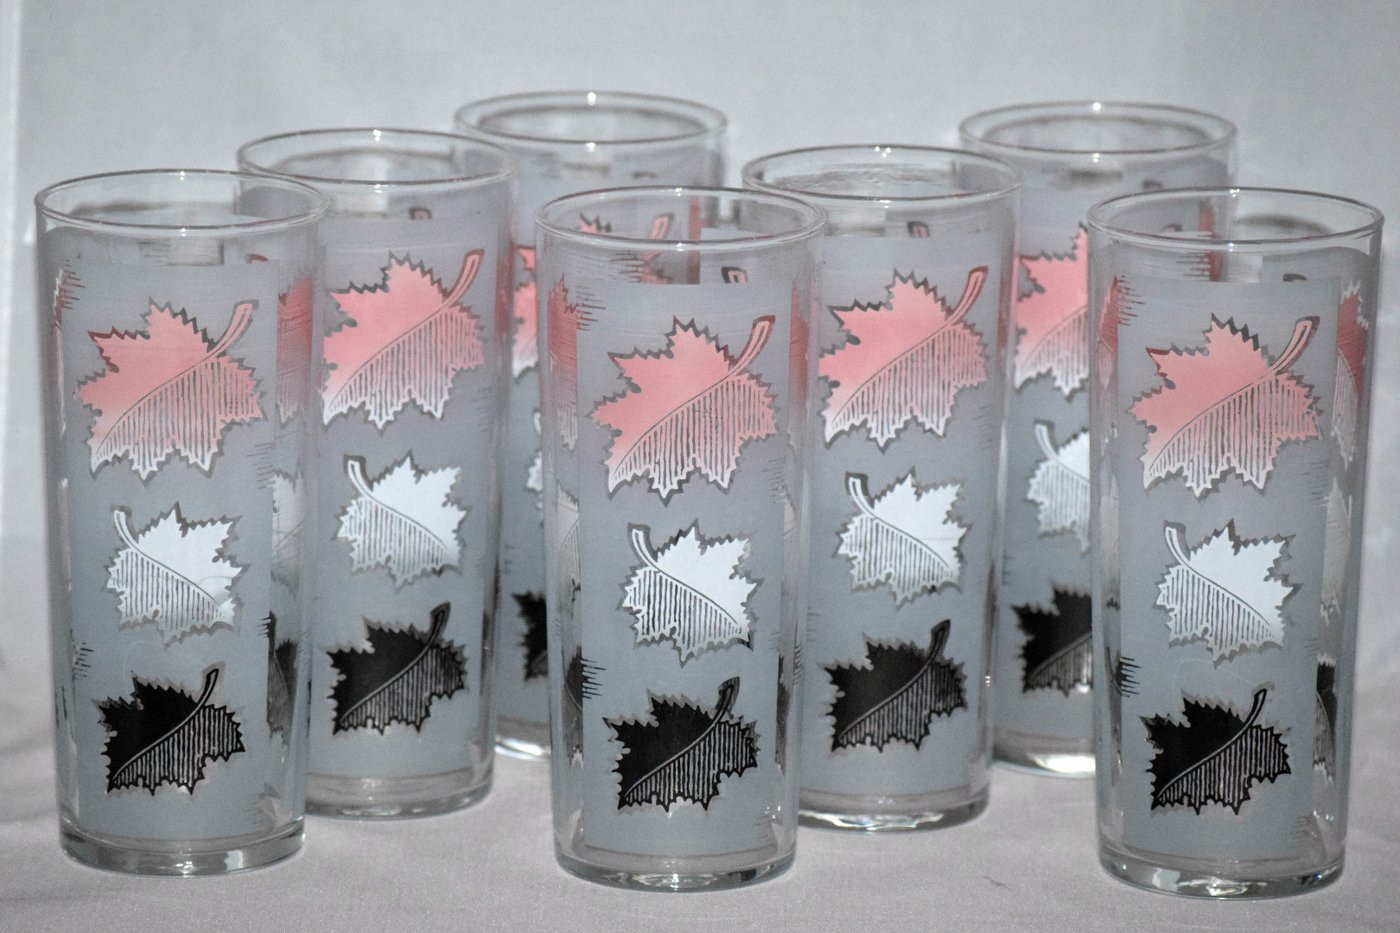 libbey glass vases bulk of vintage barware libbey glassware pink frosted leaves vintage regarding vintage barware libbey glassware pink frosted leaves retro reclaimations 1